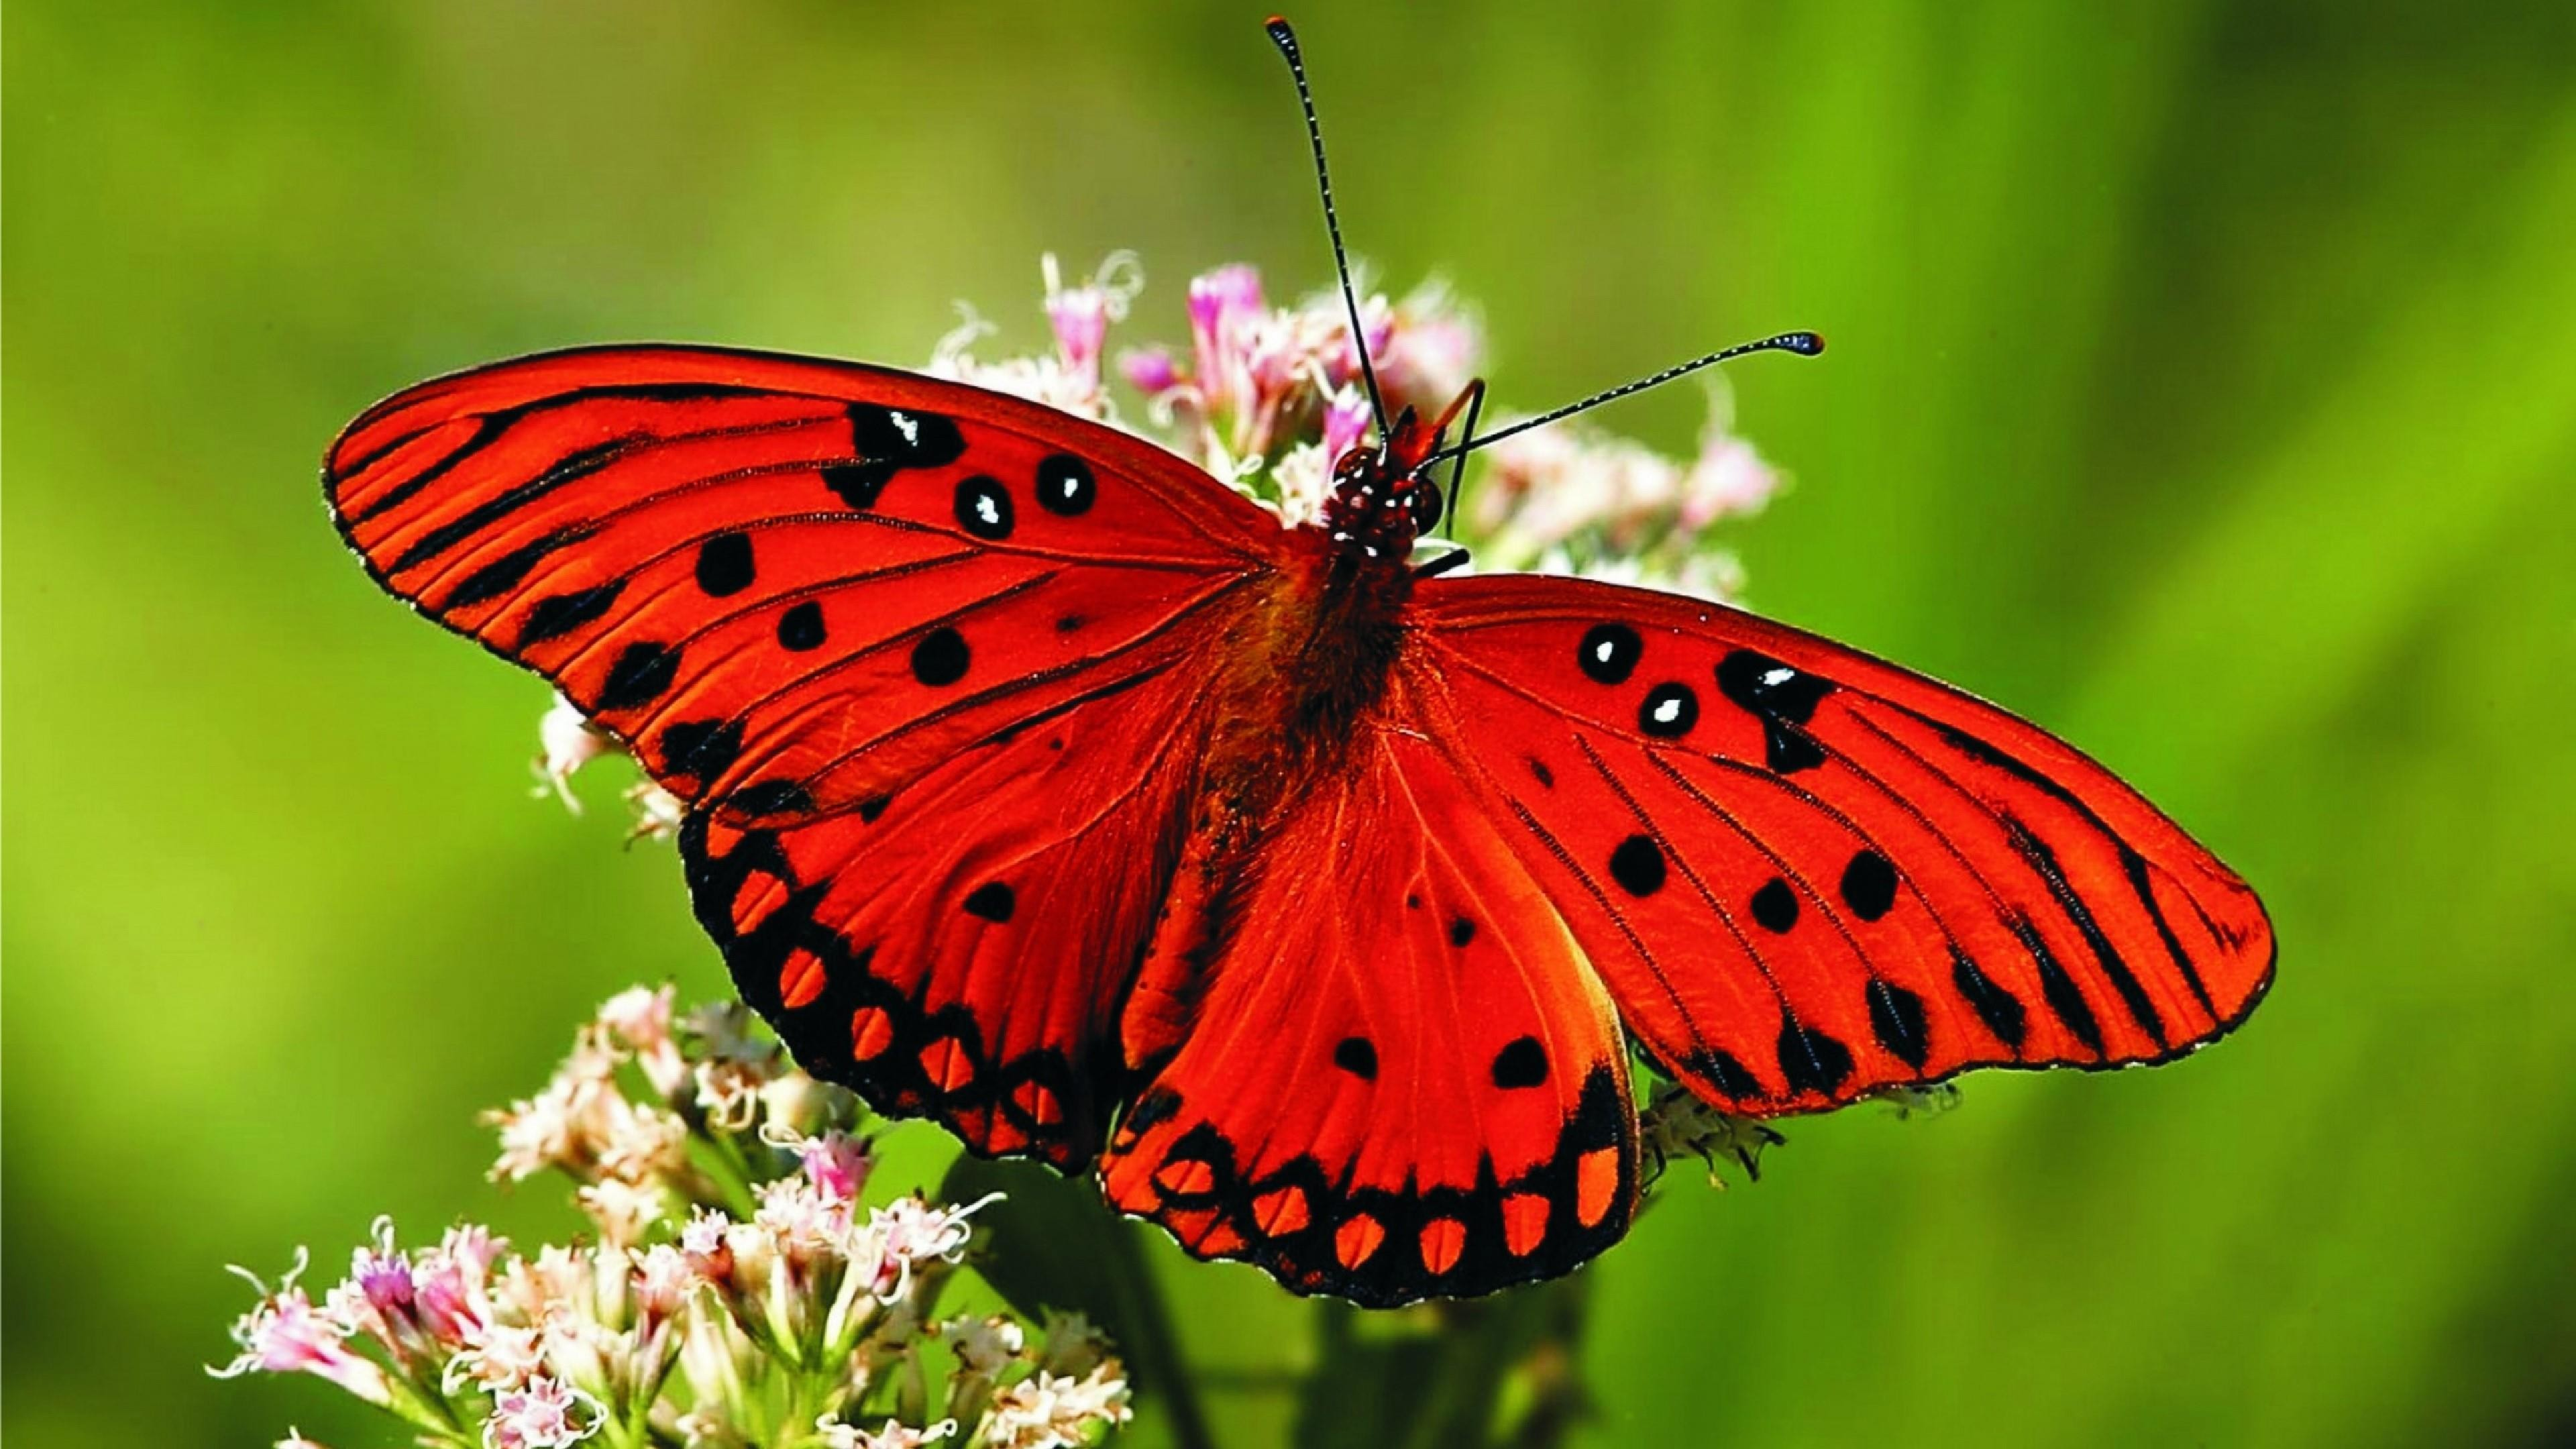 Res: 3840x2160, Red Butterfly Wallpaper   Wallpaper Studio 10   Tens of thousands HD and  UltraHD wallpapers for Android, Windows and Xbox